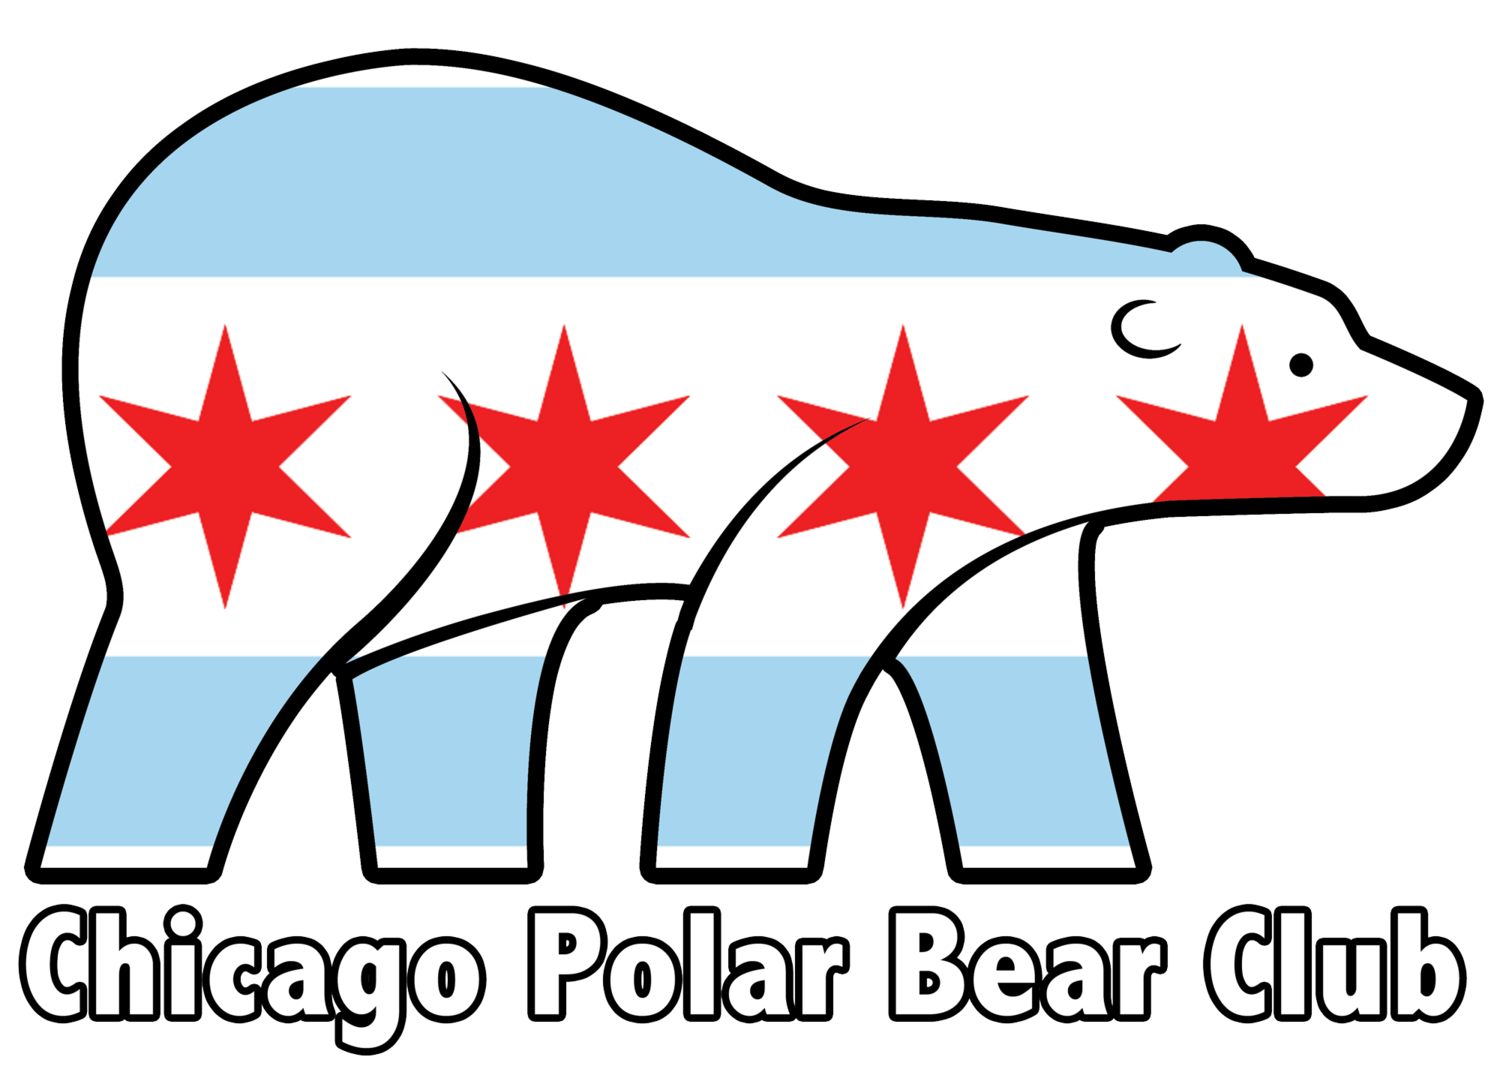 Diving clipart polar bear. Chicago club formatw